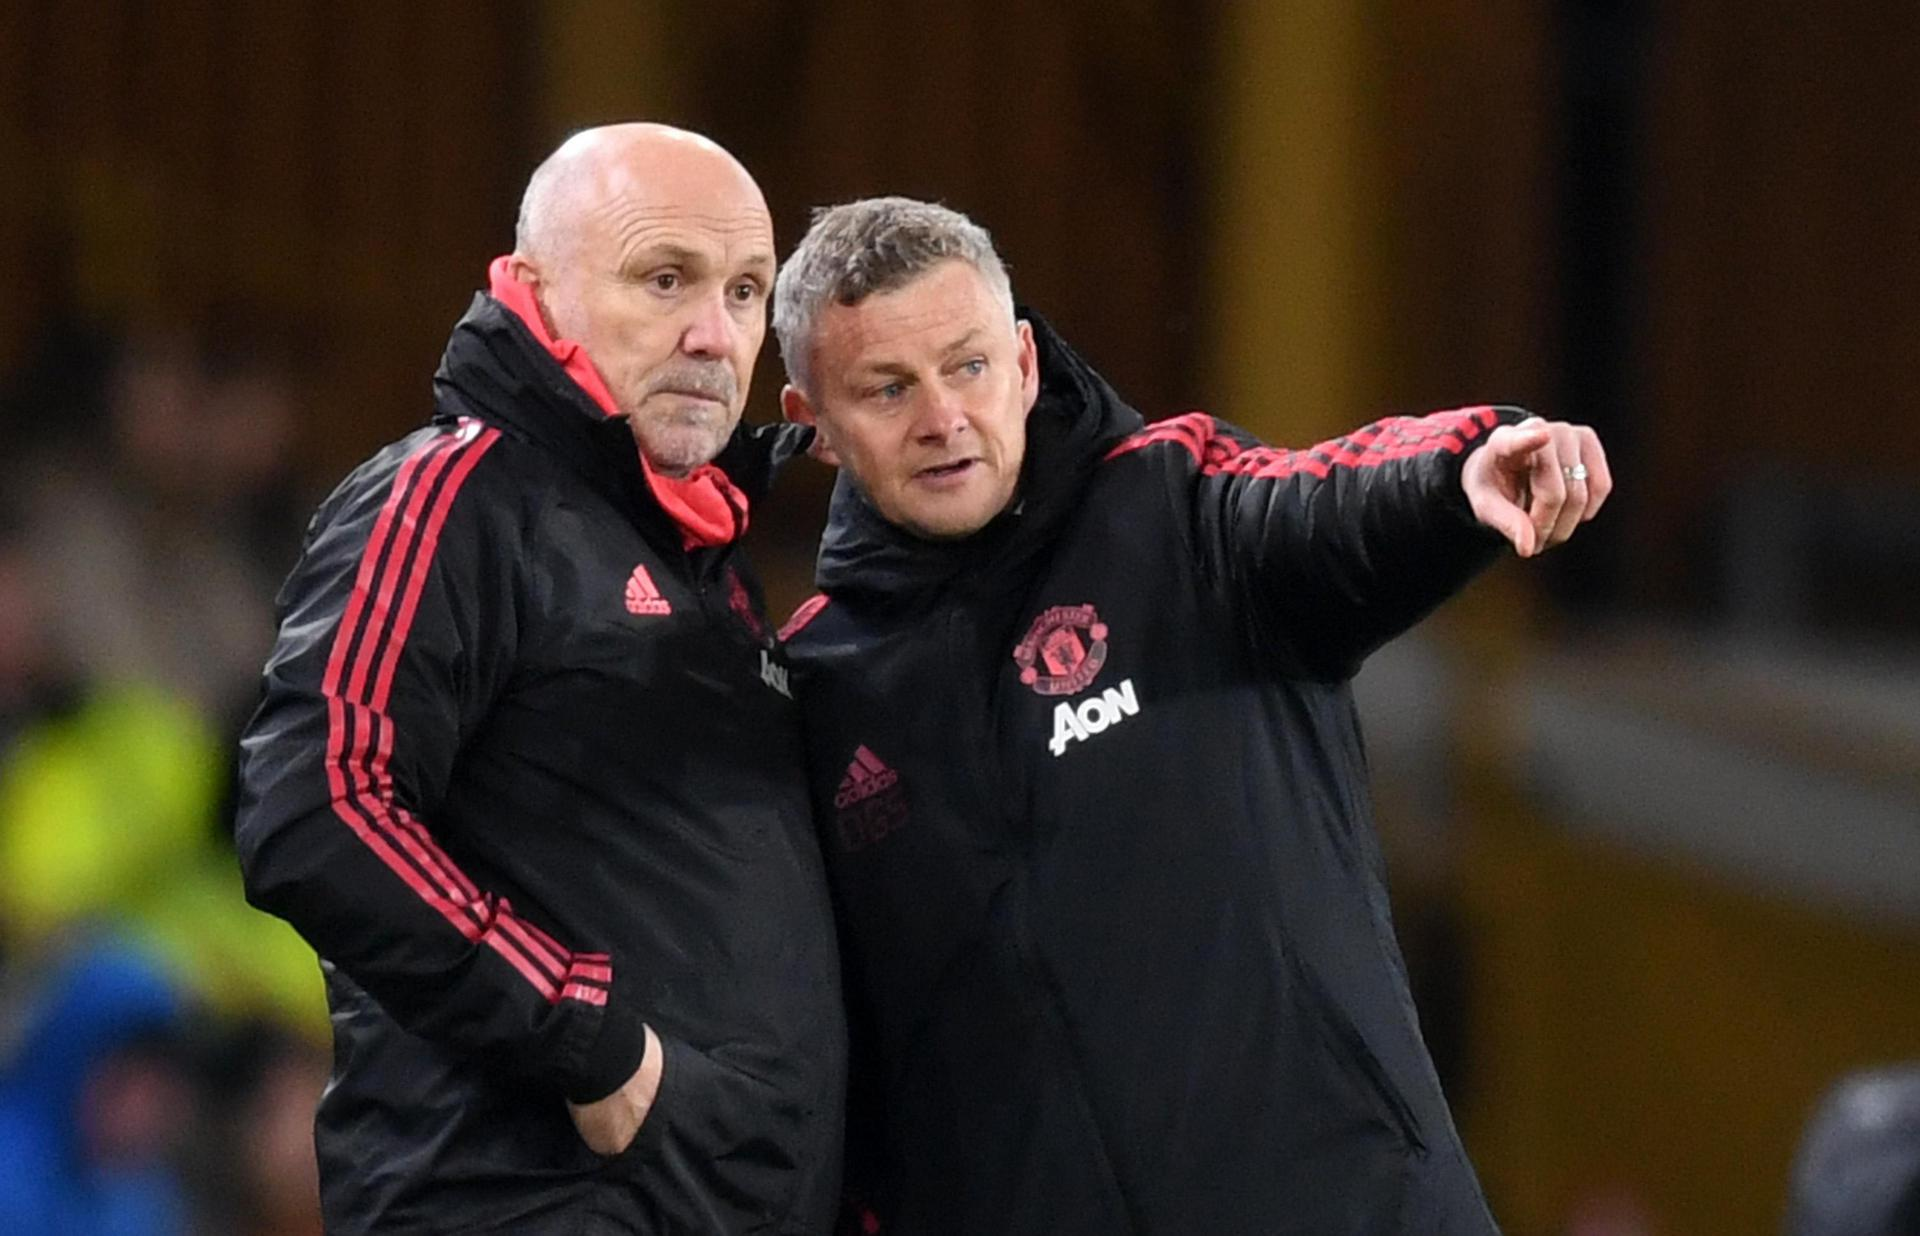 Ole Gunnar Solskjaer and Mike Phelan.